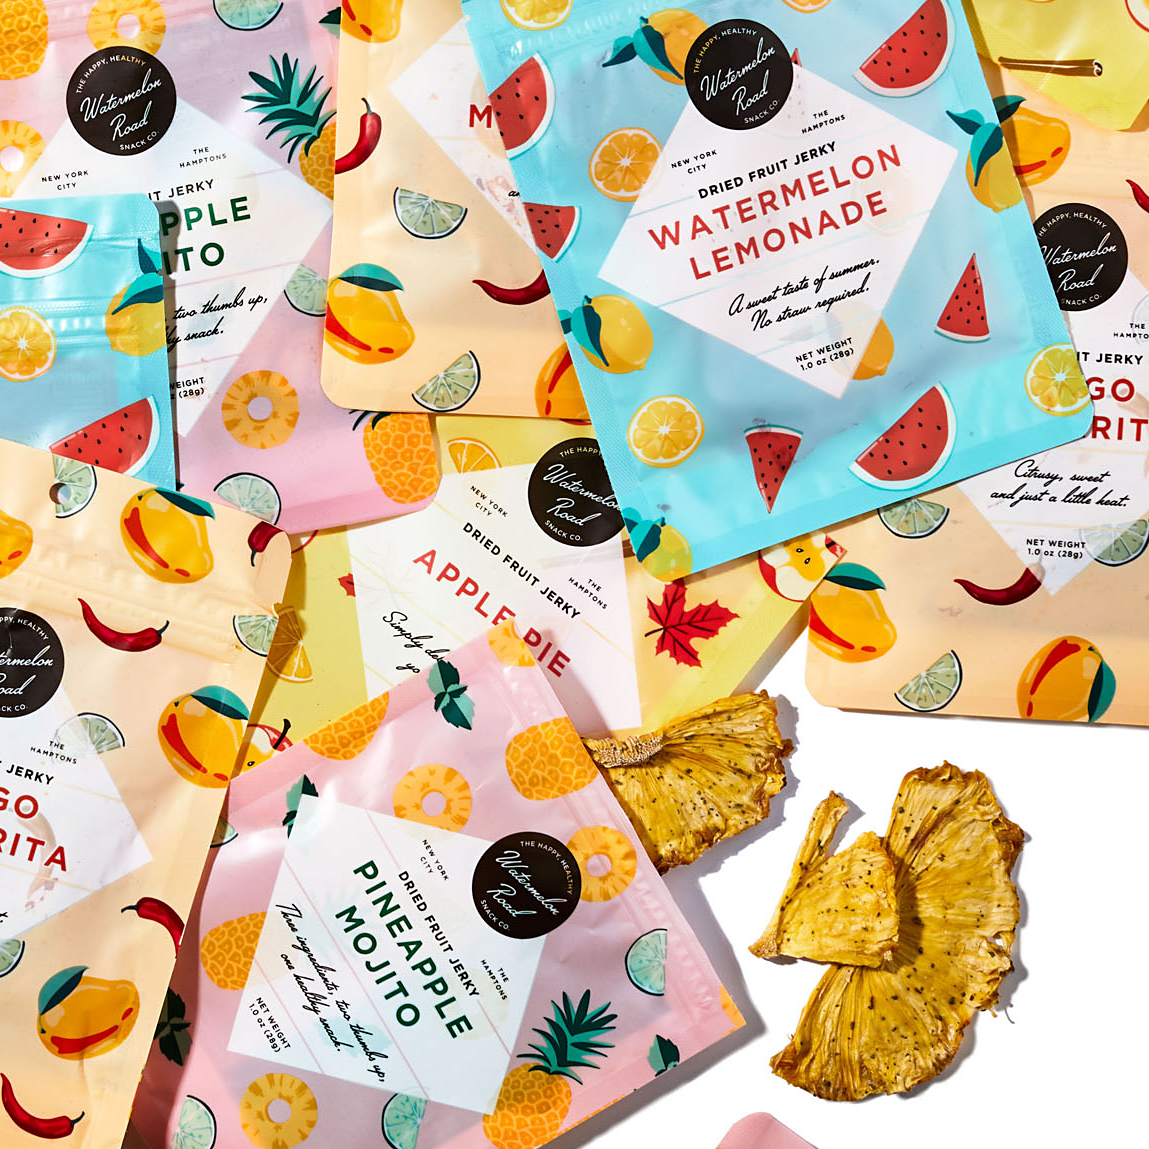 assorted fruit jerky packets and dried pineapple